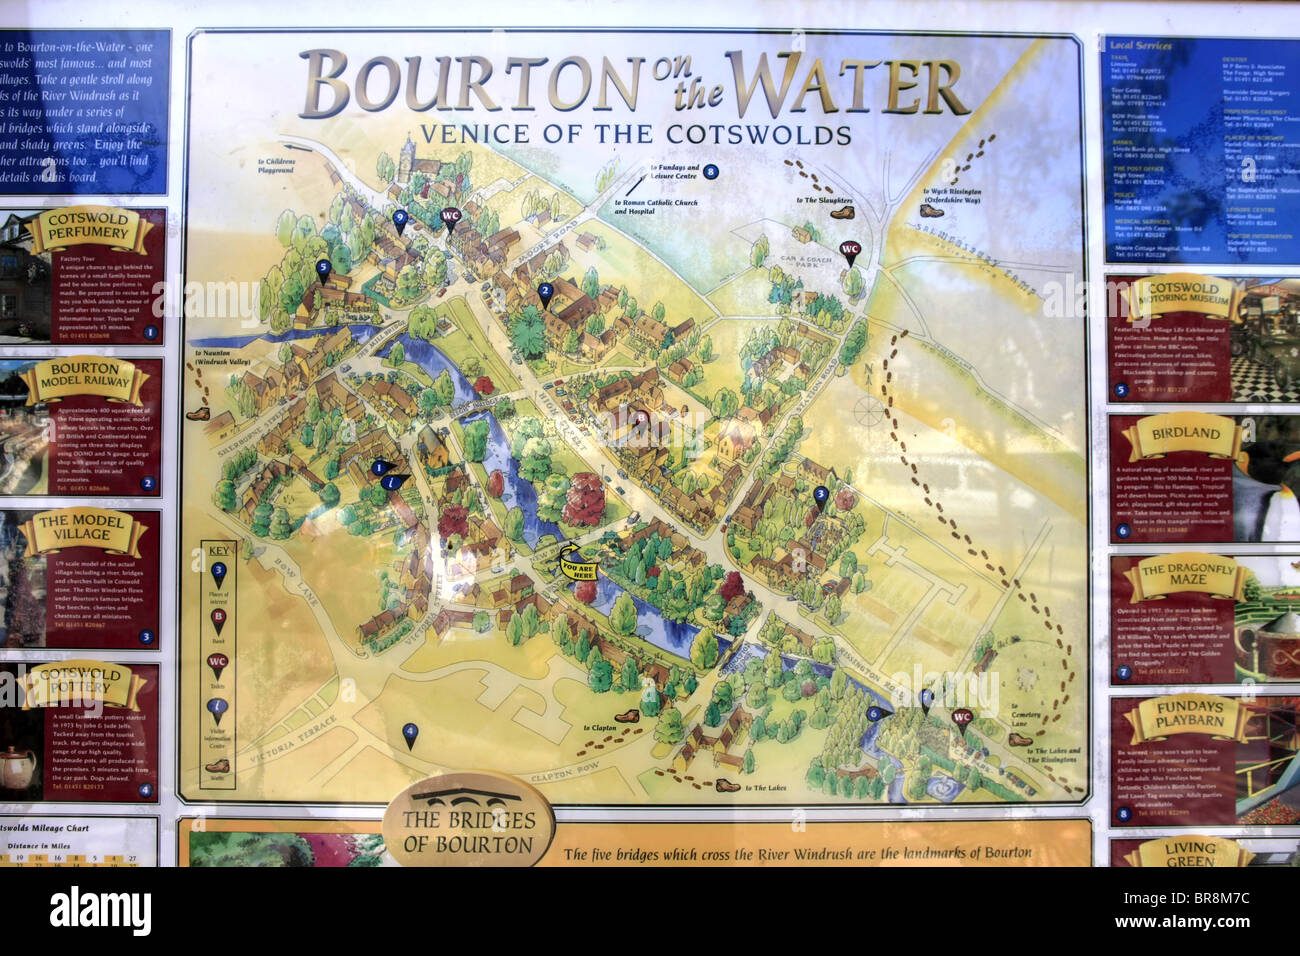 Bourton On The Water Map A colorful map of the little town of Bourton On The Water, Venice  Bourton On The Water Map